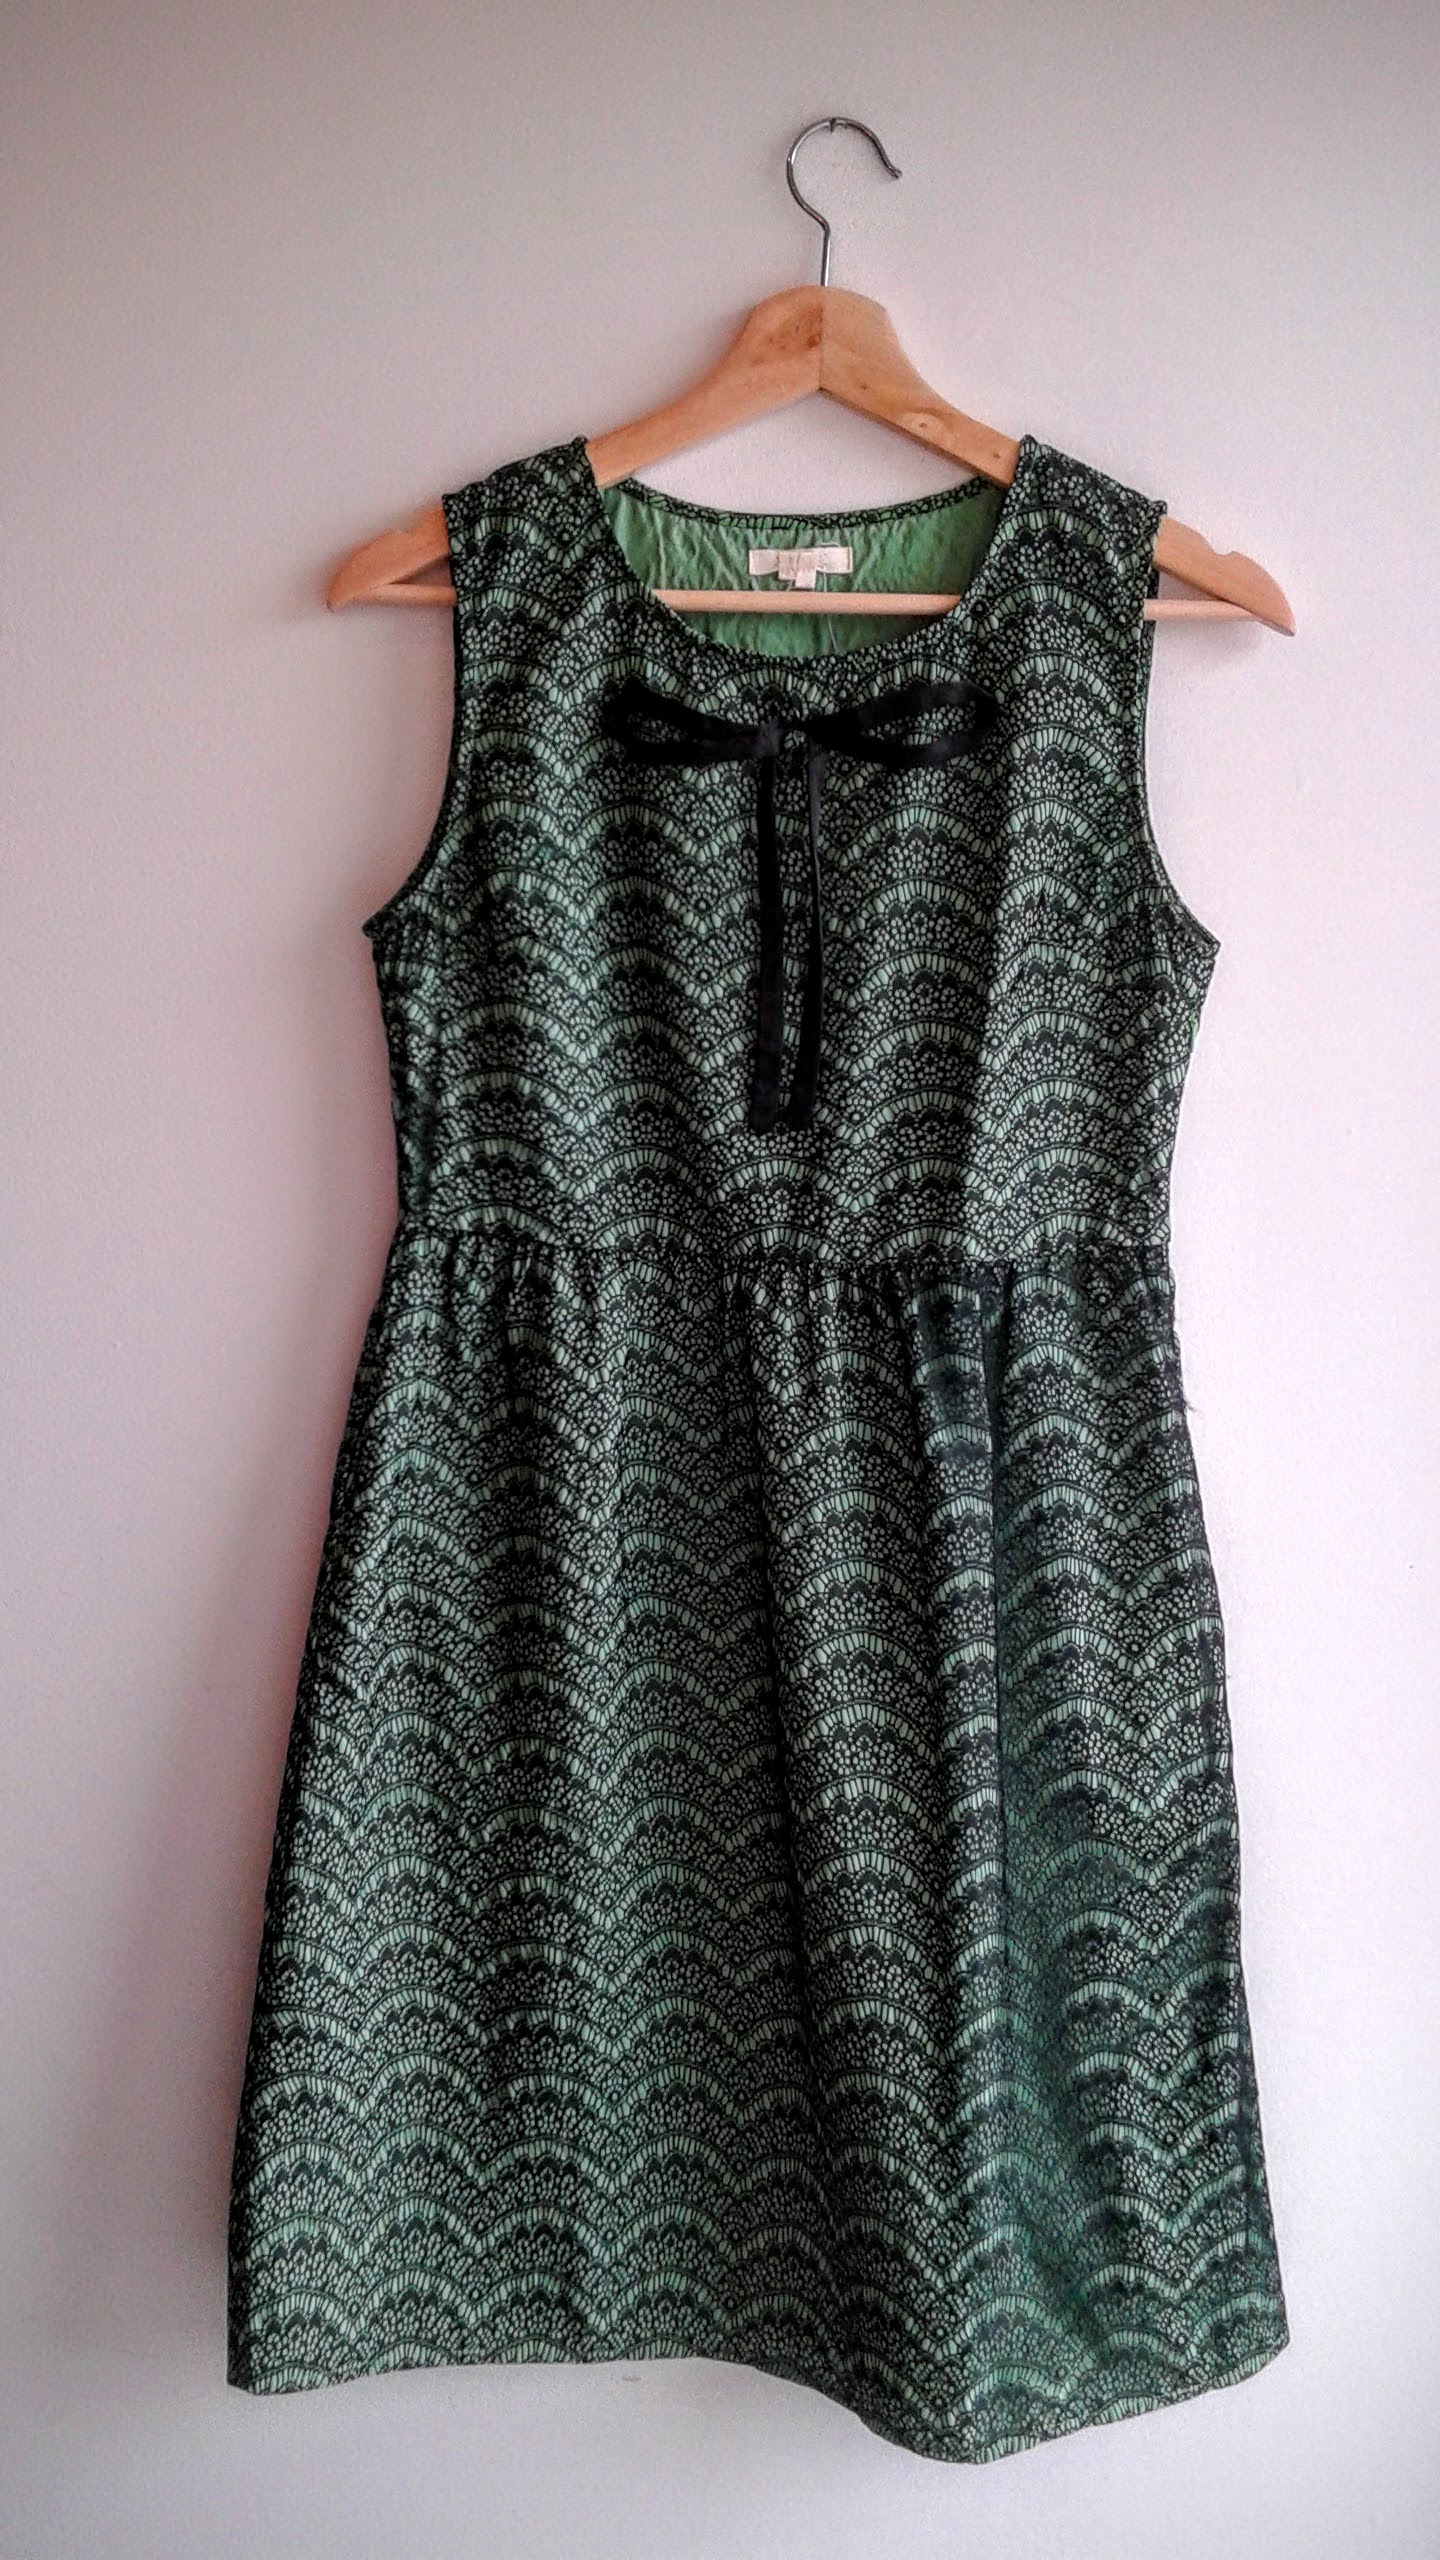 Tulle  dress; Size S, $36